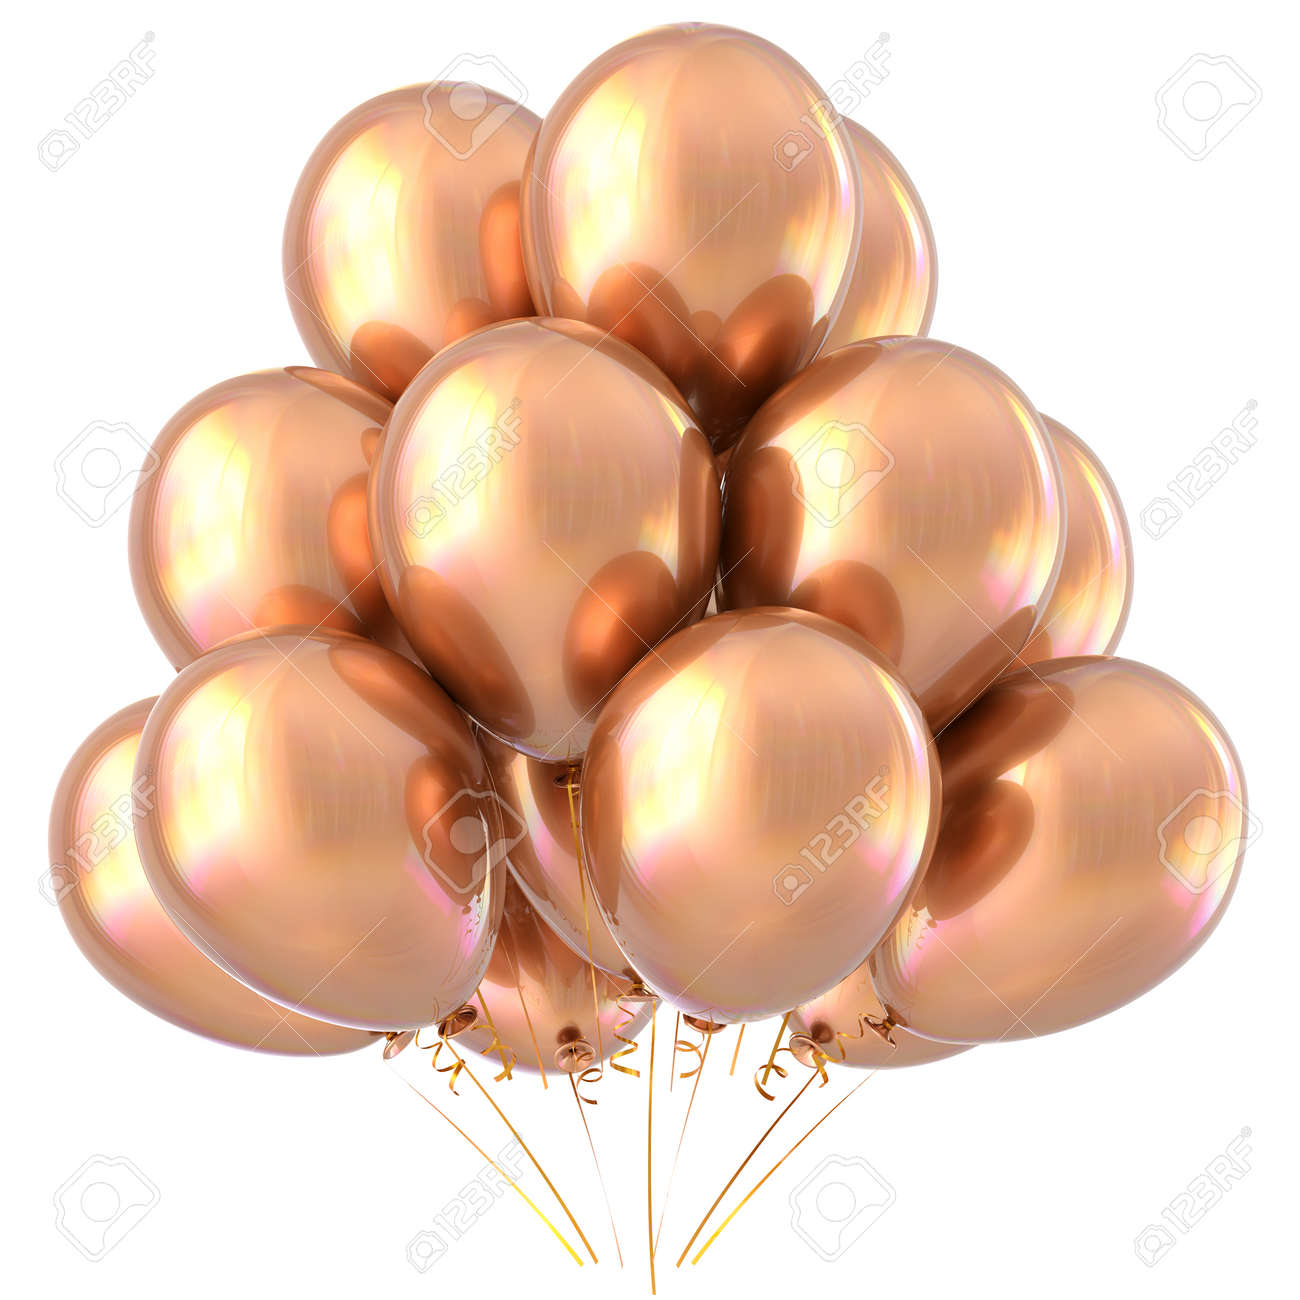 golden balloons happy birthday party decoration yellow glossy holiday anniversary celebrate new years eve xmas